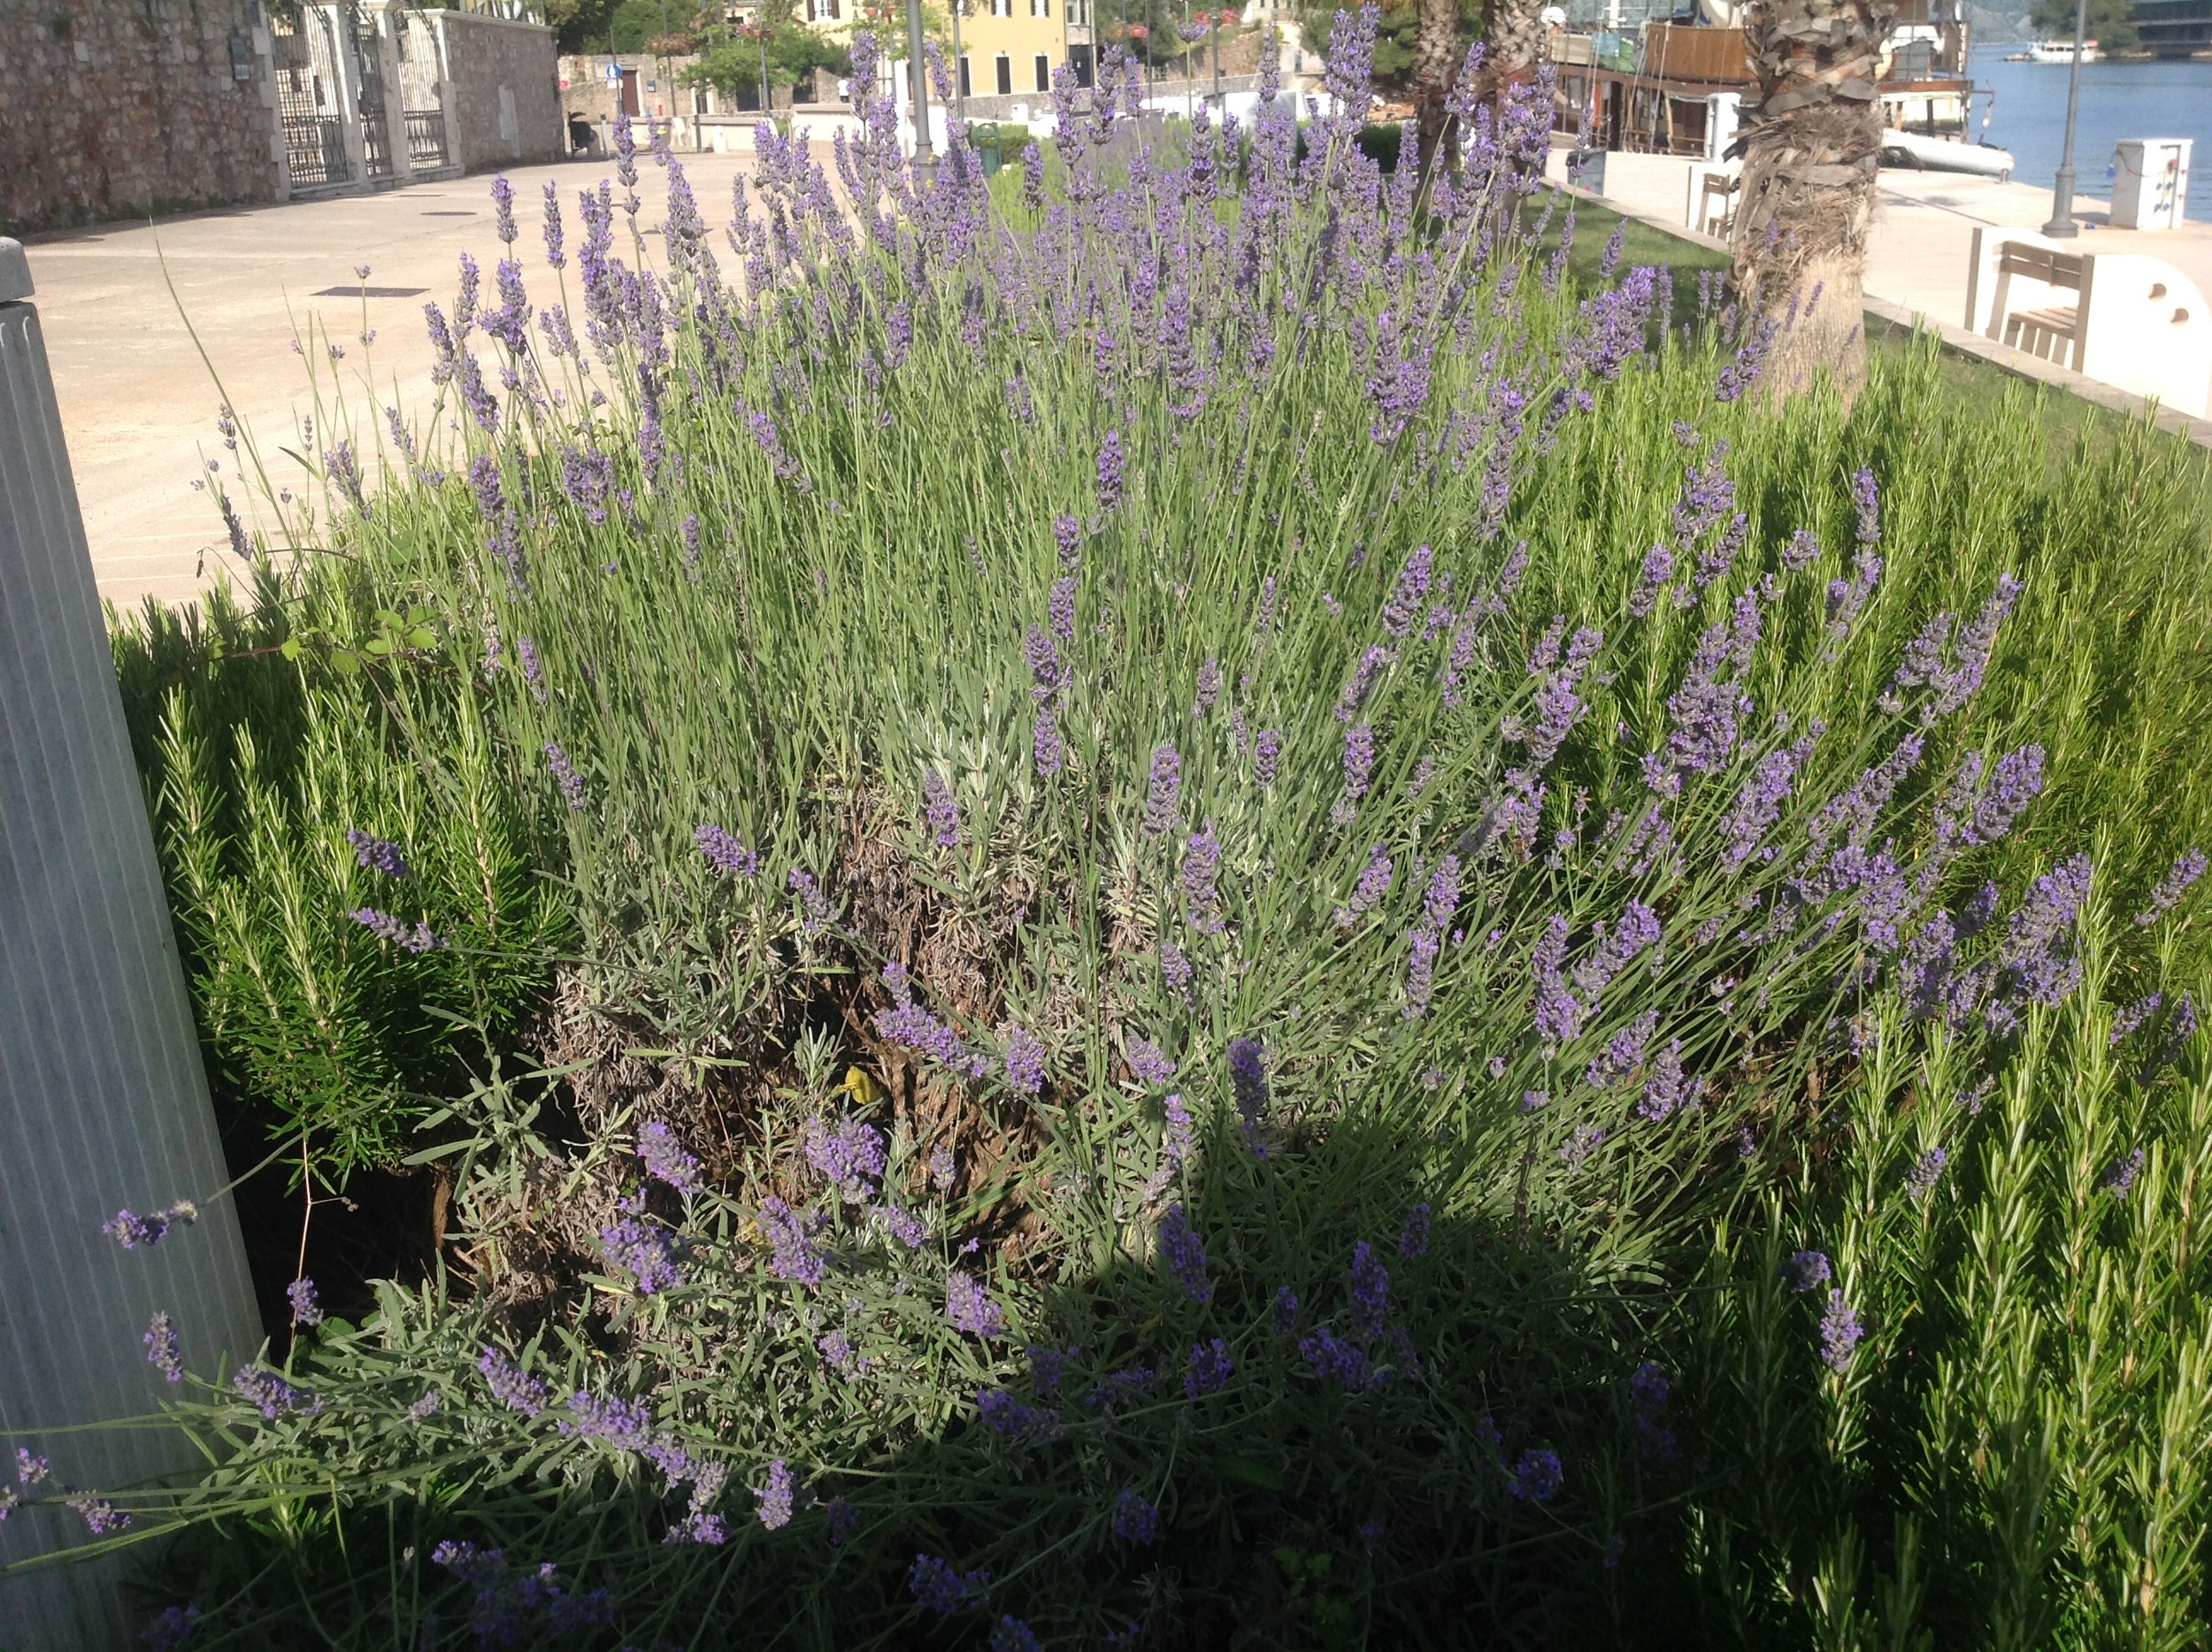 gardens in public spaces mostly grow lavender, and sometimes rosemary. Street stalls in the more touristy areas are full of lavender products. The better ones share their lavender space with rosemary and immortelle, which we know as curry plant.